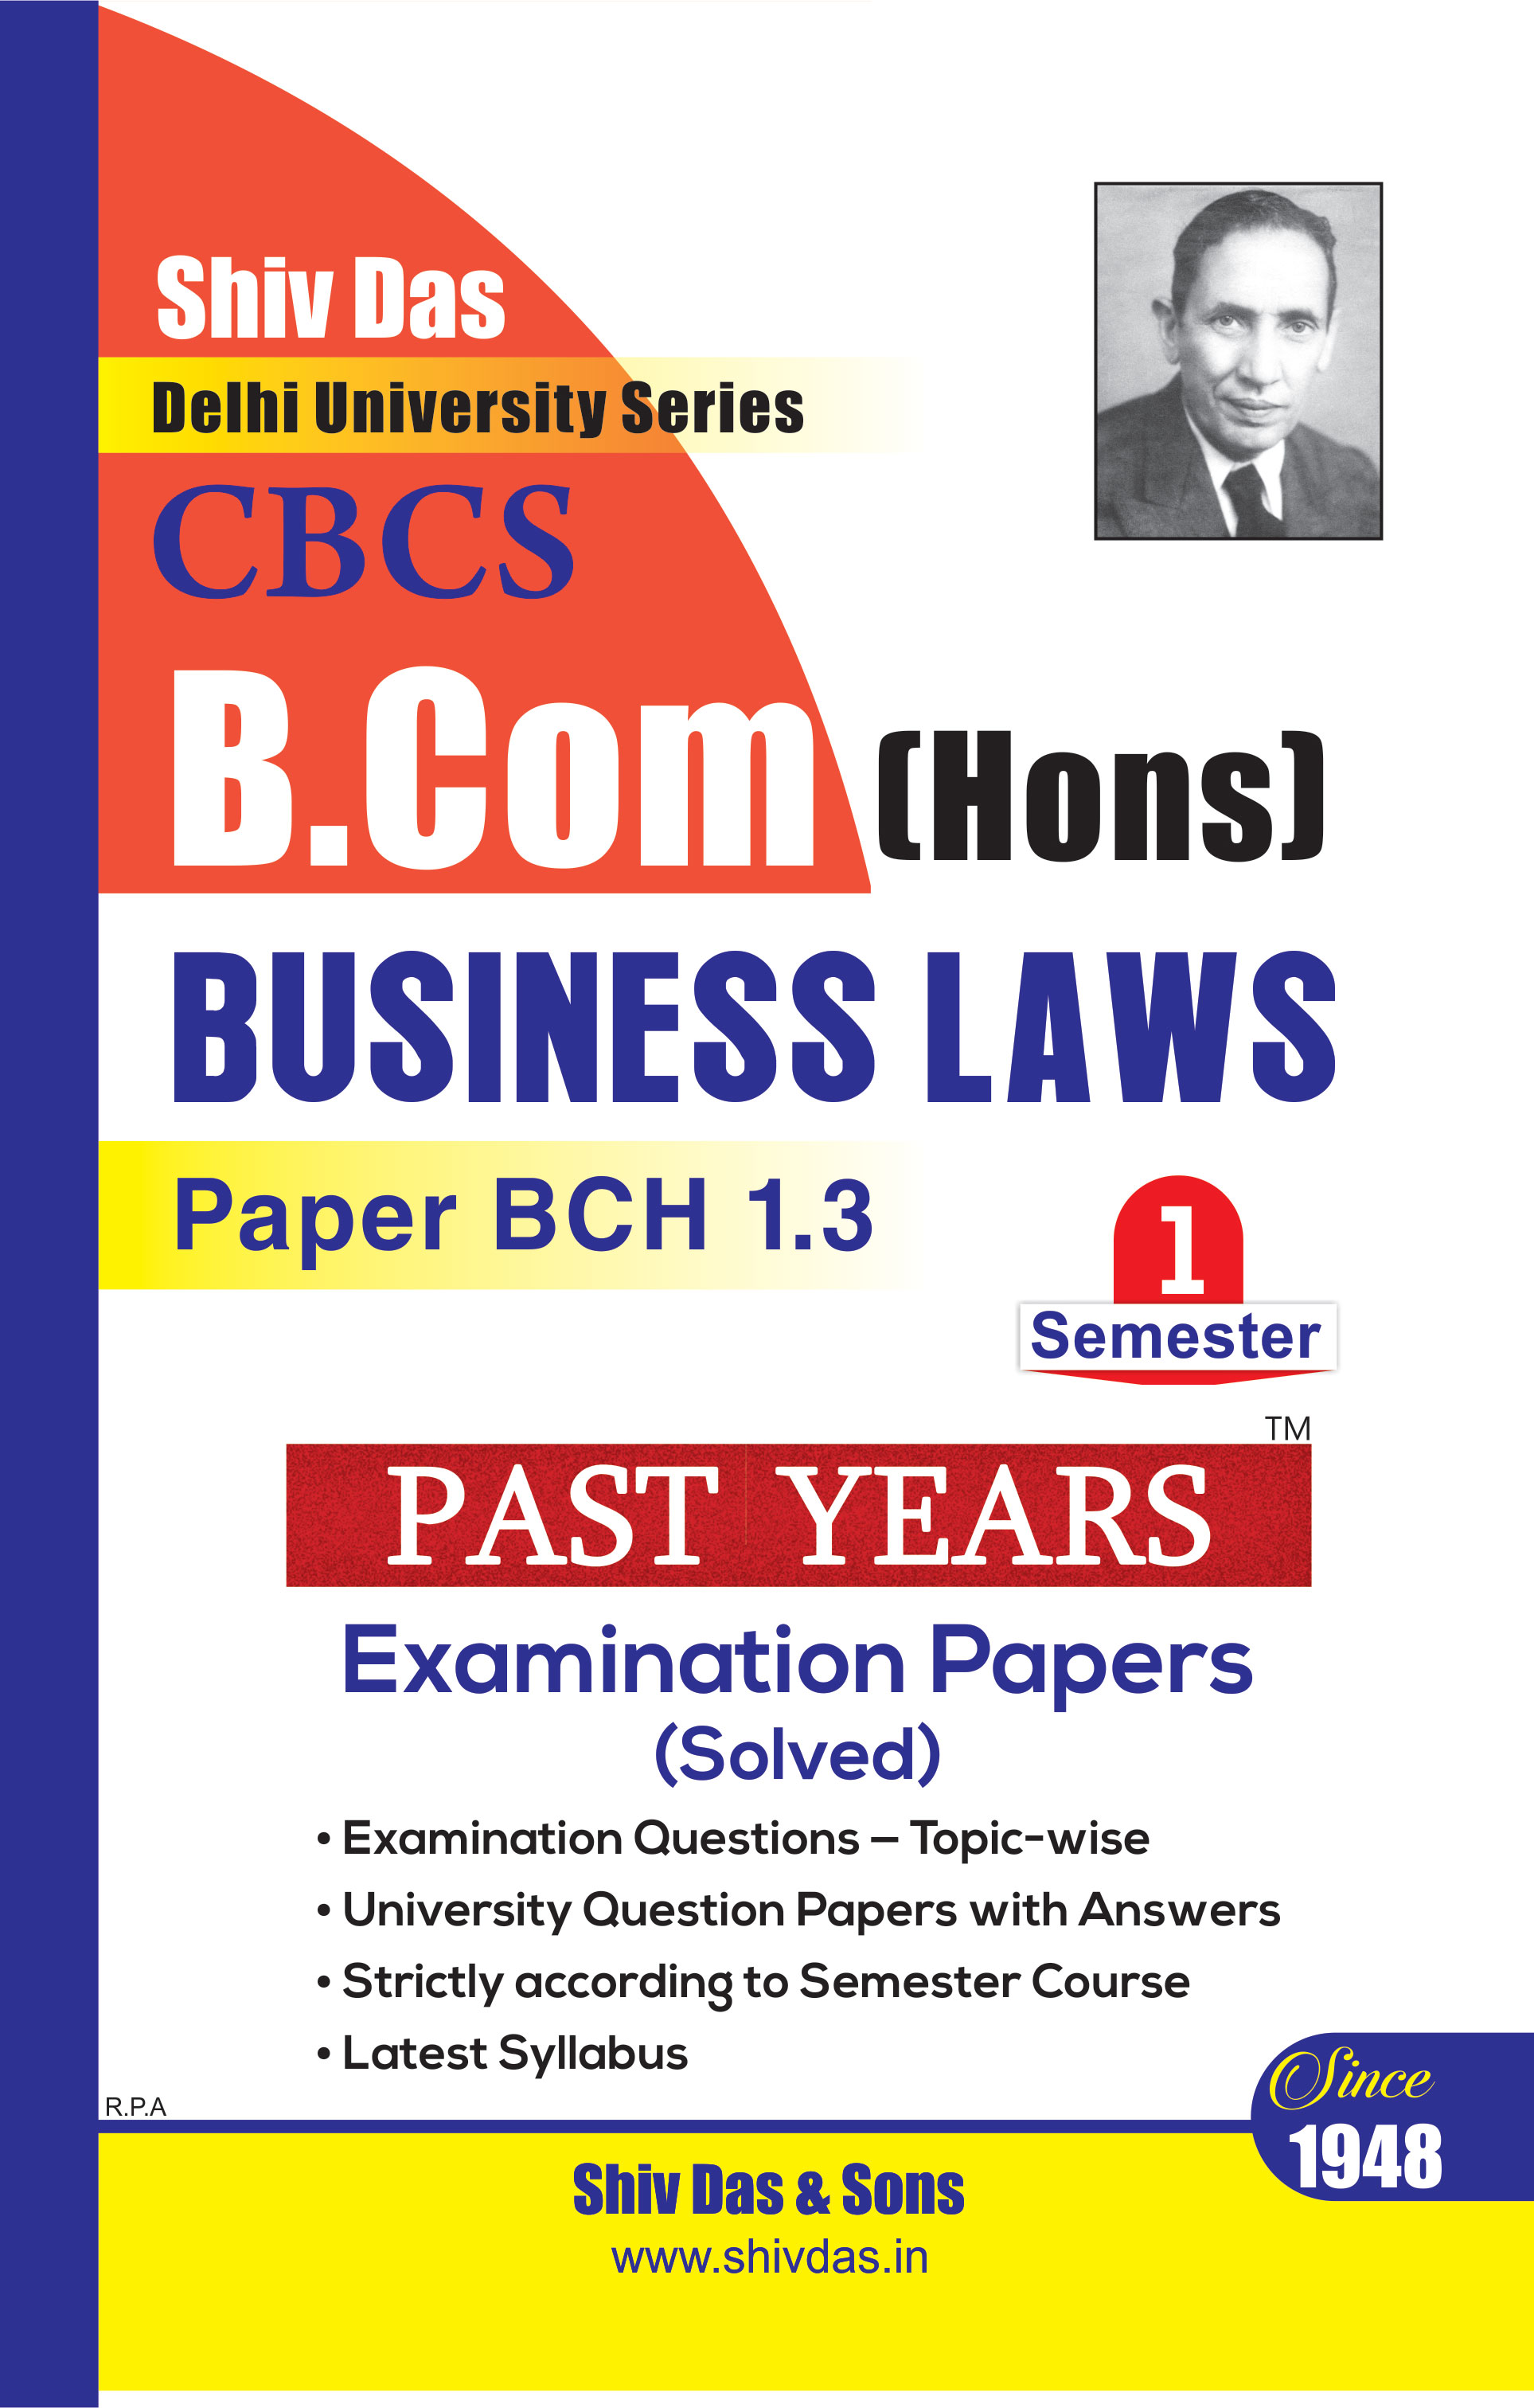 Business Laws  for B.Com Hons Semester 1 for Delhi University by Shiv Das